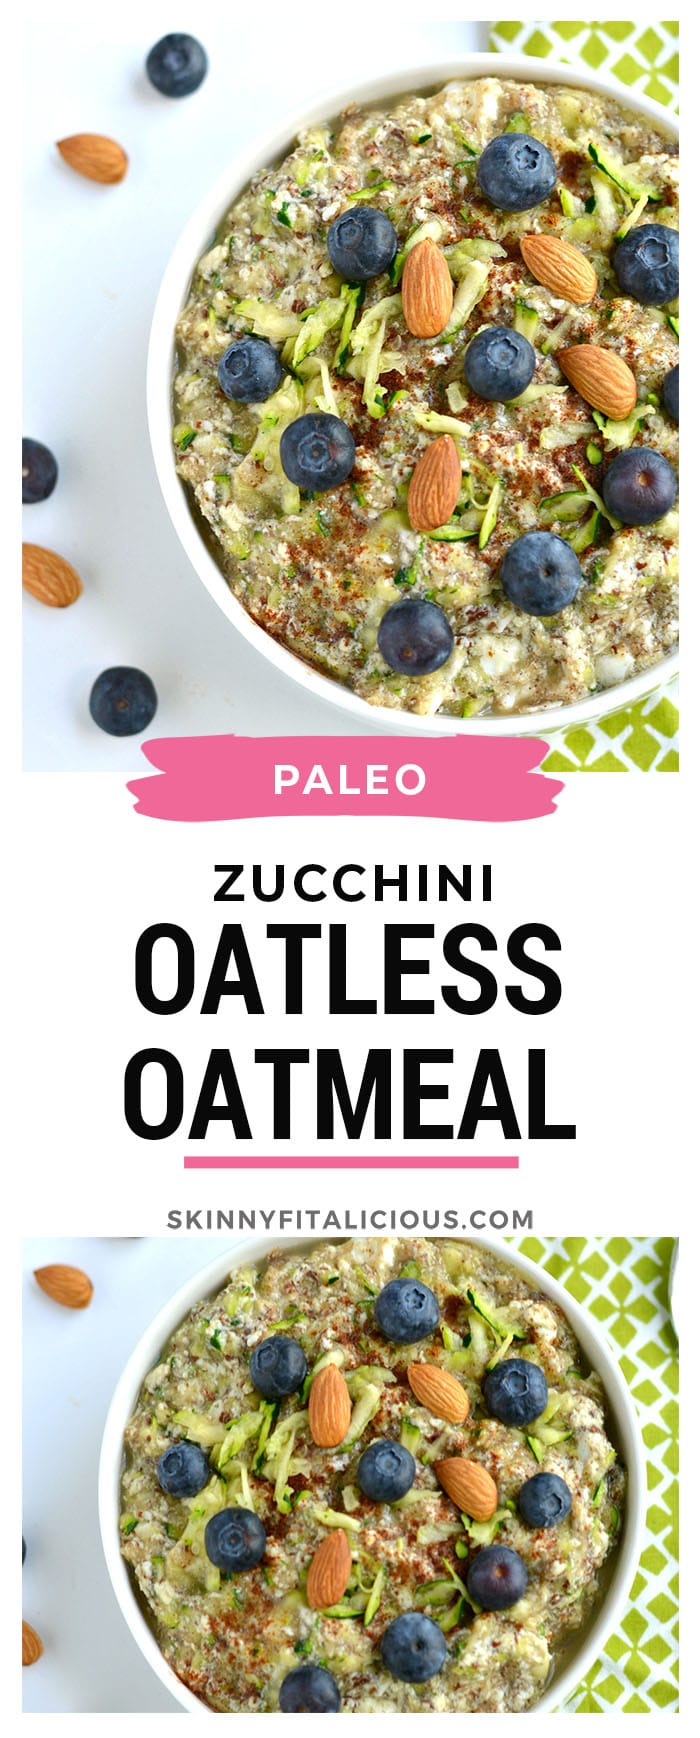 Zucchini Oatless Oatmeal is a Paleo twist on a classic bowl of morning oatmeal. Made with eggs,almond milk, zucchini, applesauce, flaxseed and cinnamon, this simple bowl of goodness is packed with protein and fiber. A nutritiousway to stay full allmorning! Gluten Free + Paleo + Low Calorie